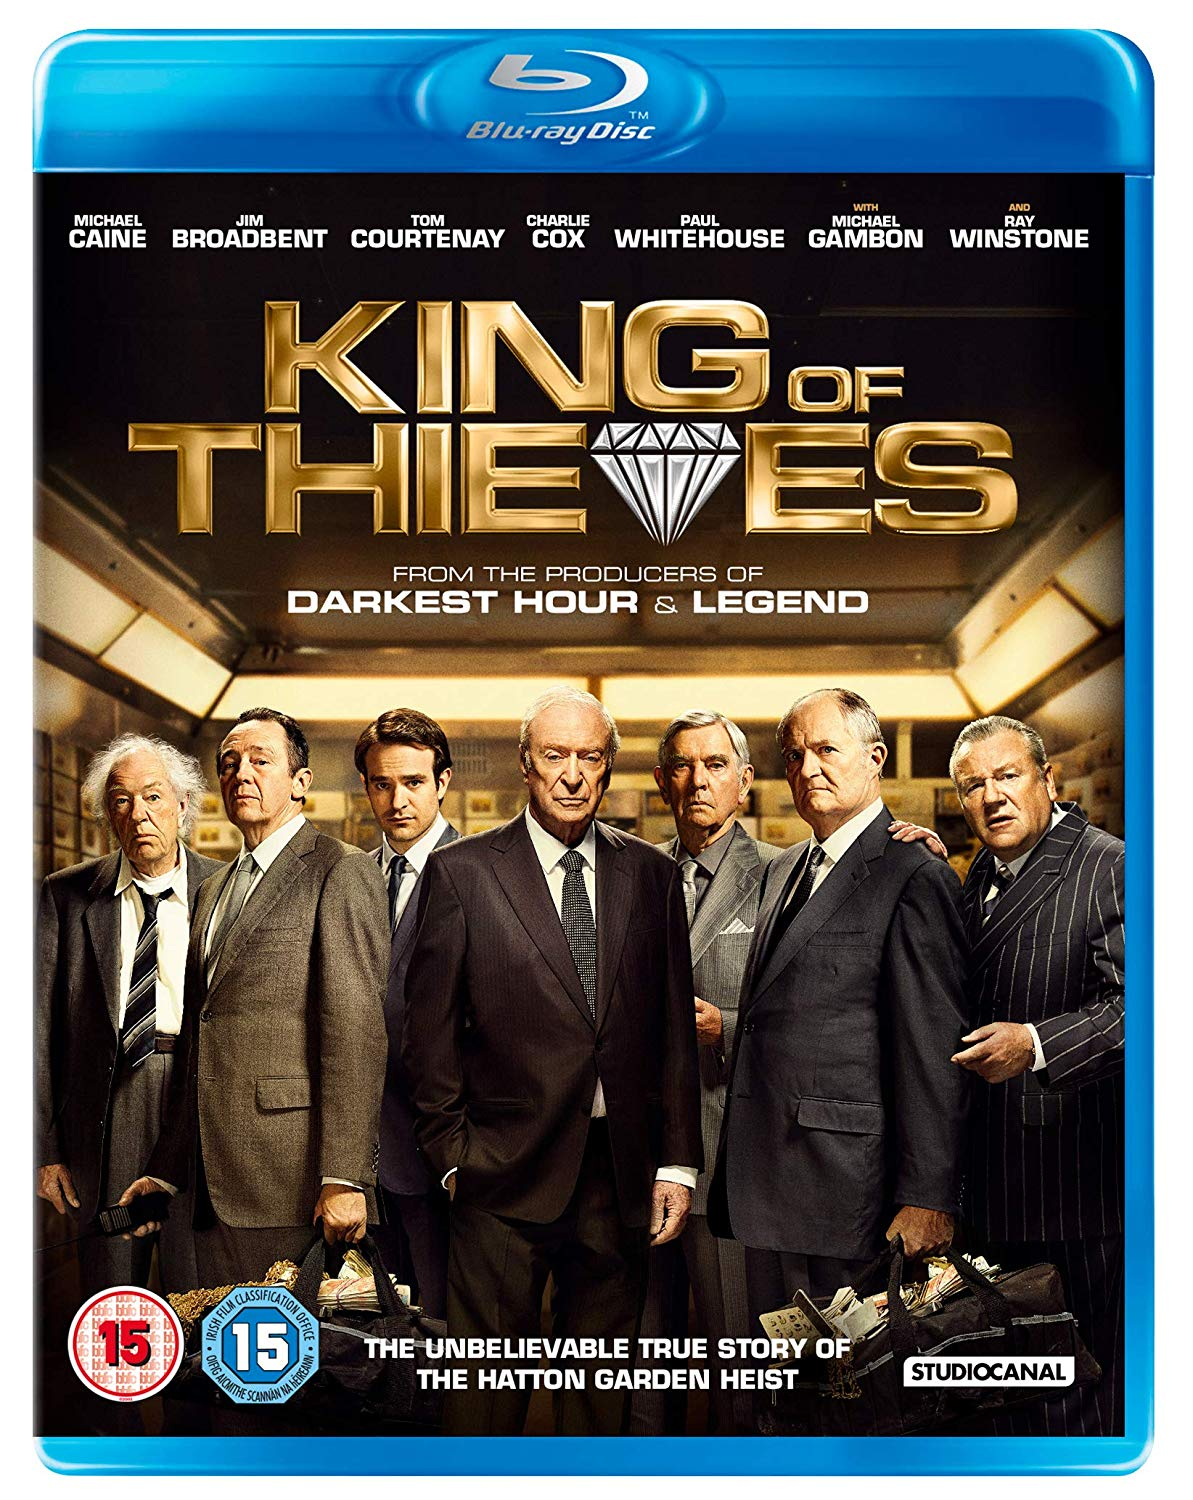 King of Thieves poster image